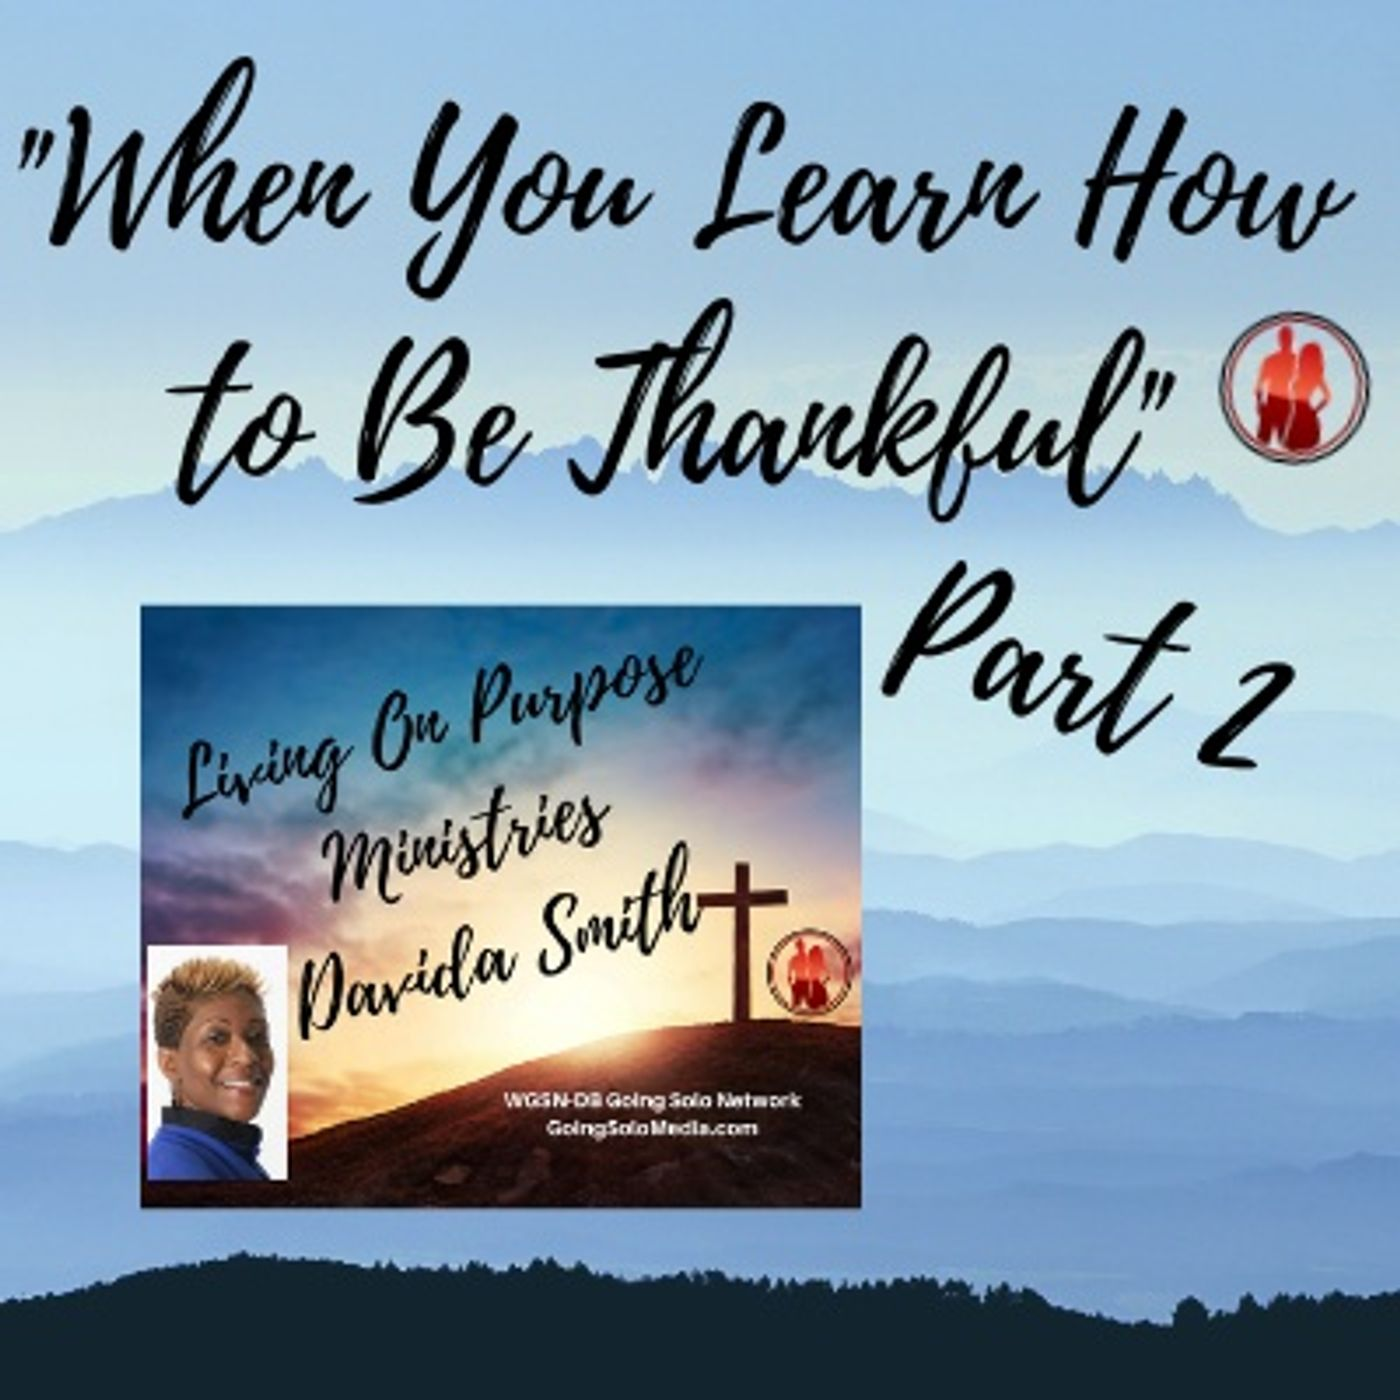 When You Learn How to Be Thankful - Part 2